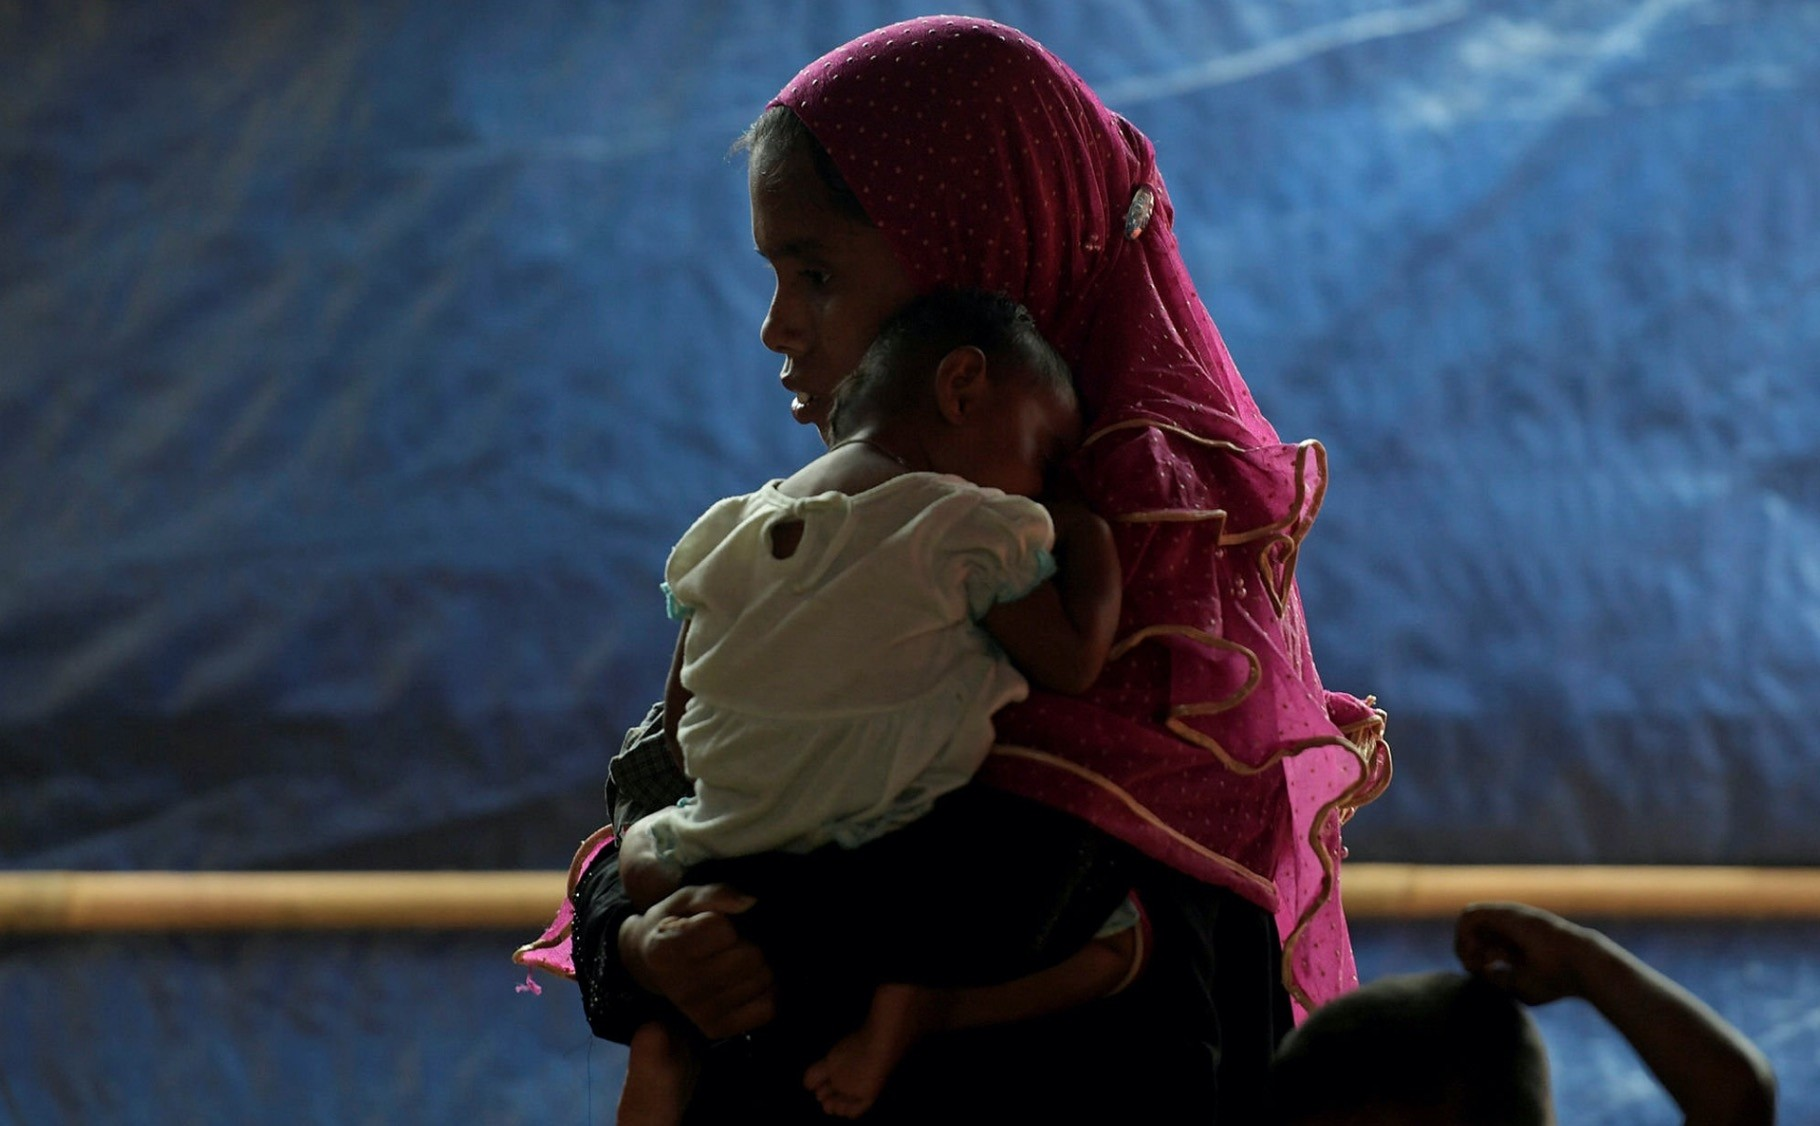 A Rohingya woman visits a health clinic with her baby at the Balukhali Refugee Camp.